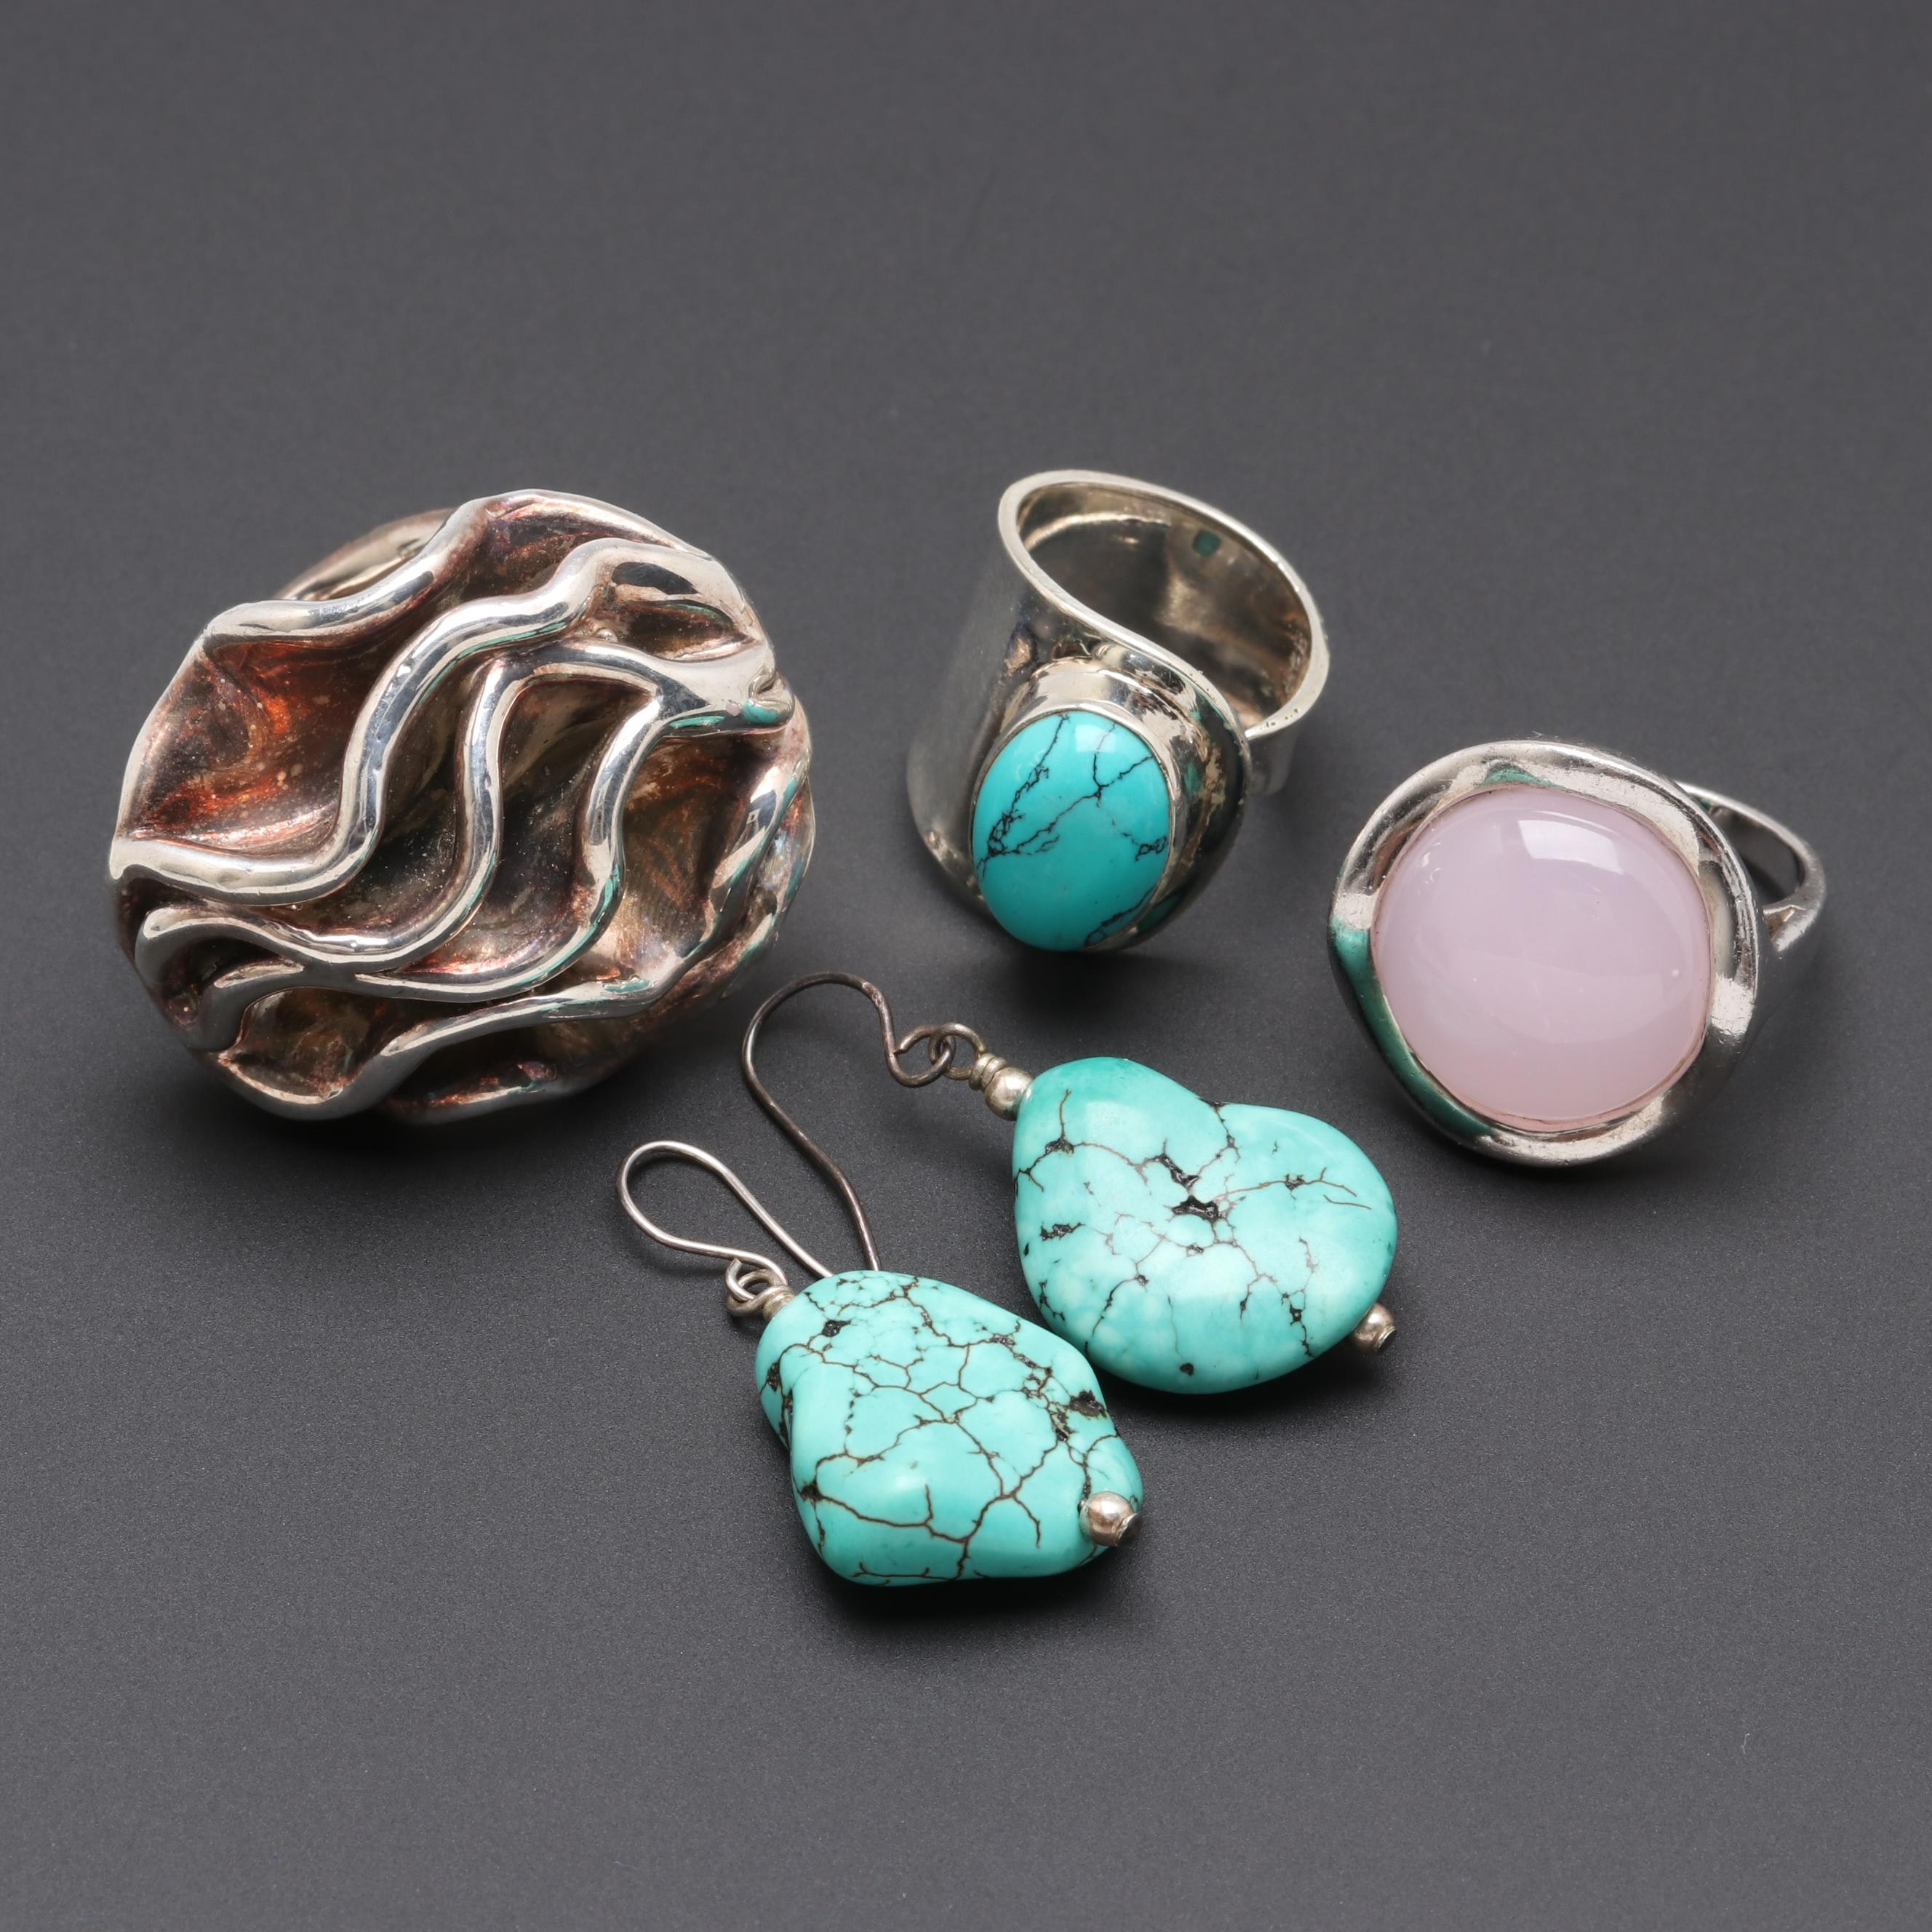 Sterling Silver Imitation Turquoise and Glass Earrings and Rings